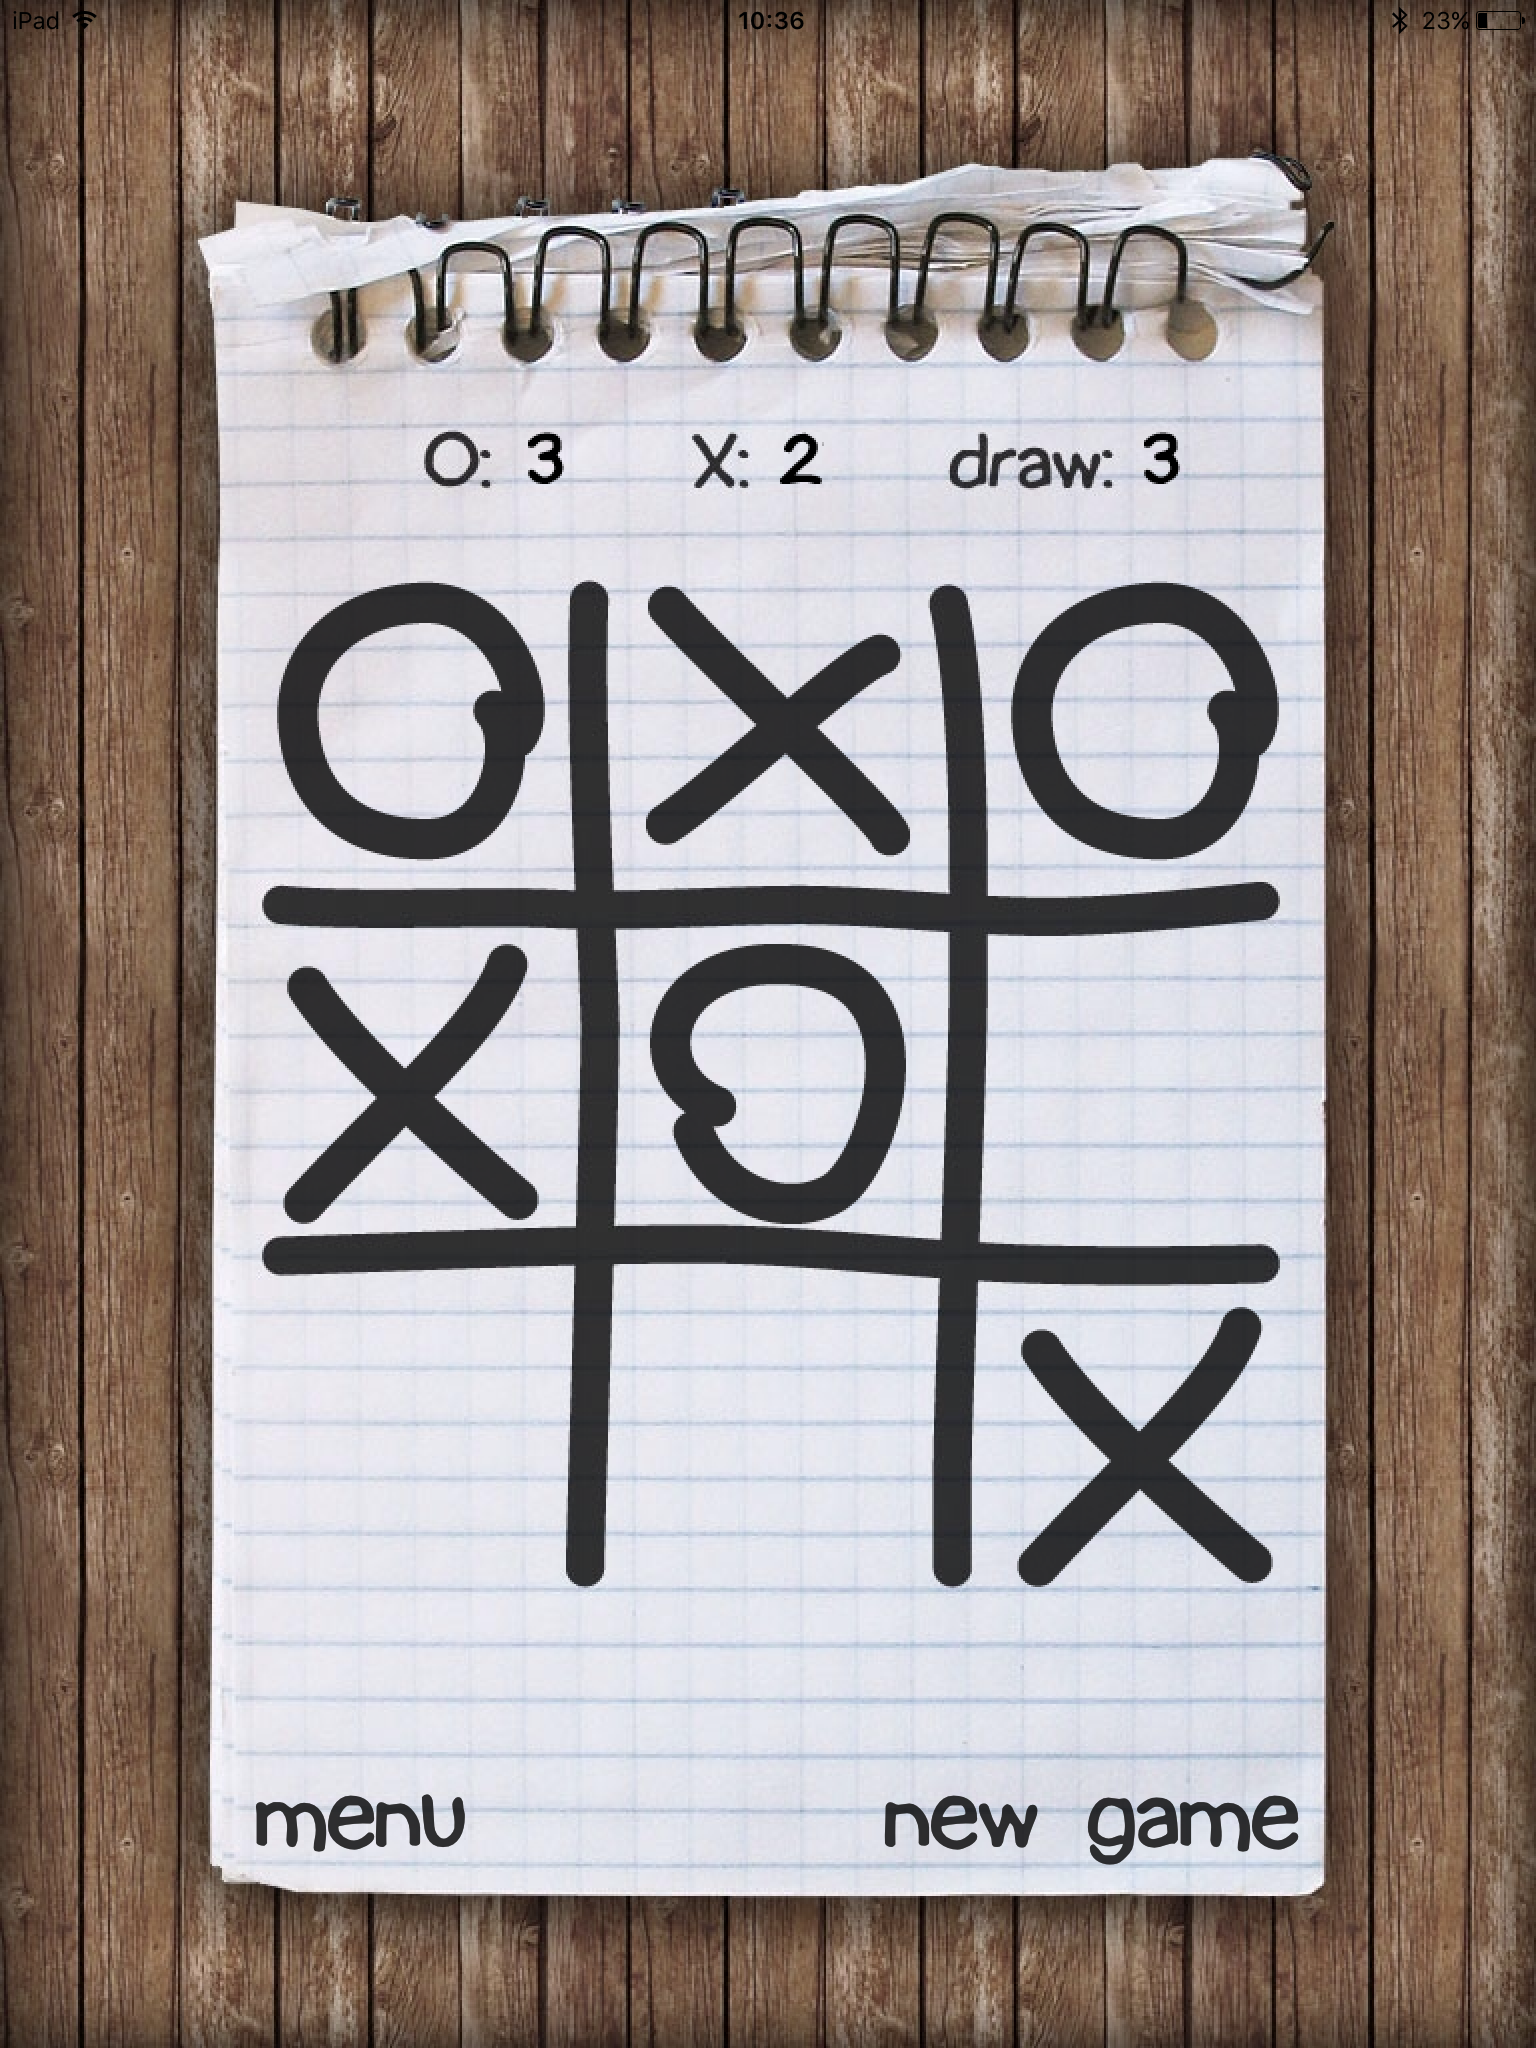 Tic-Tac-Toe Notepad by Paulo Antunes, recommended app for people living with dementia